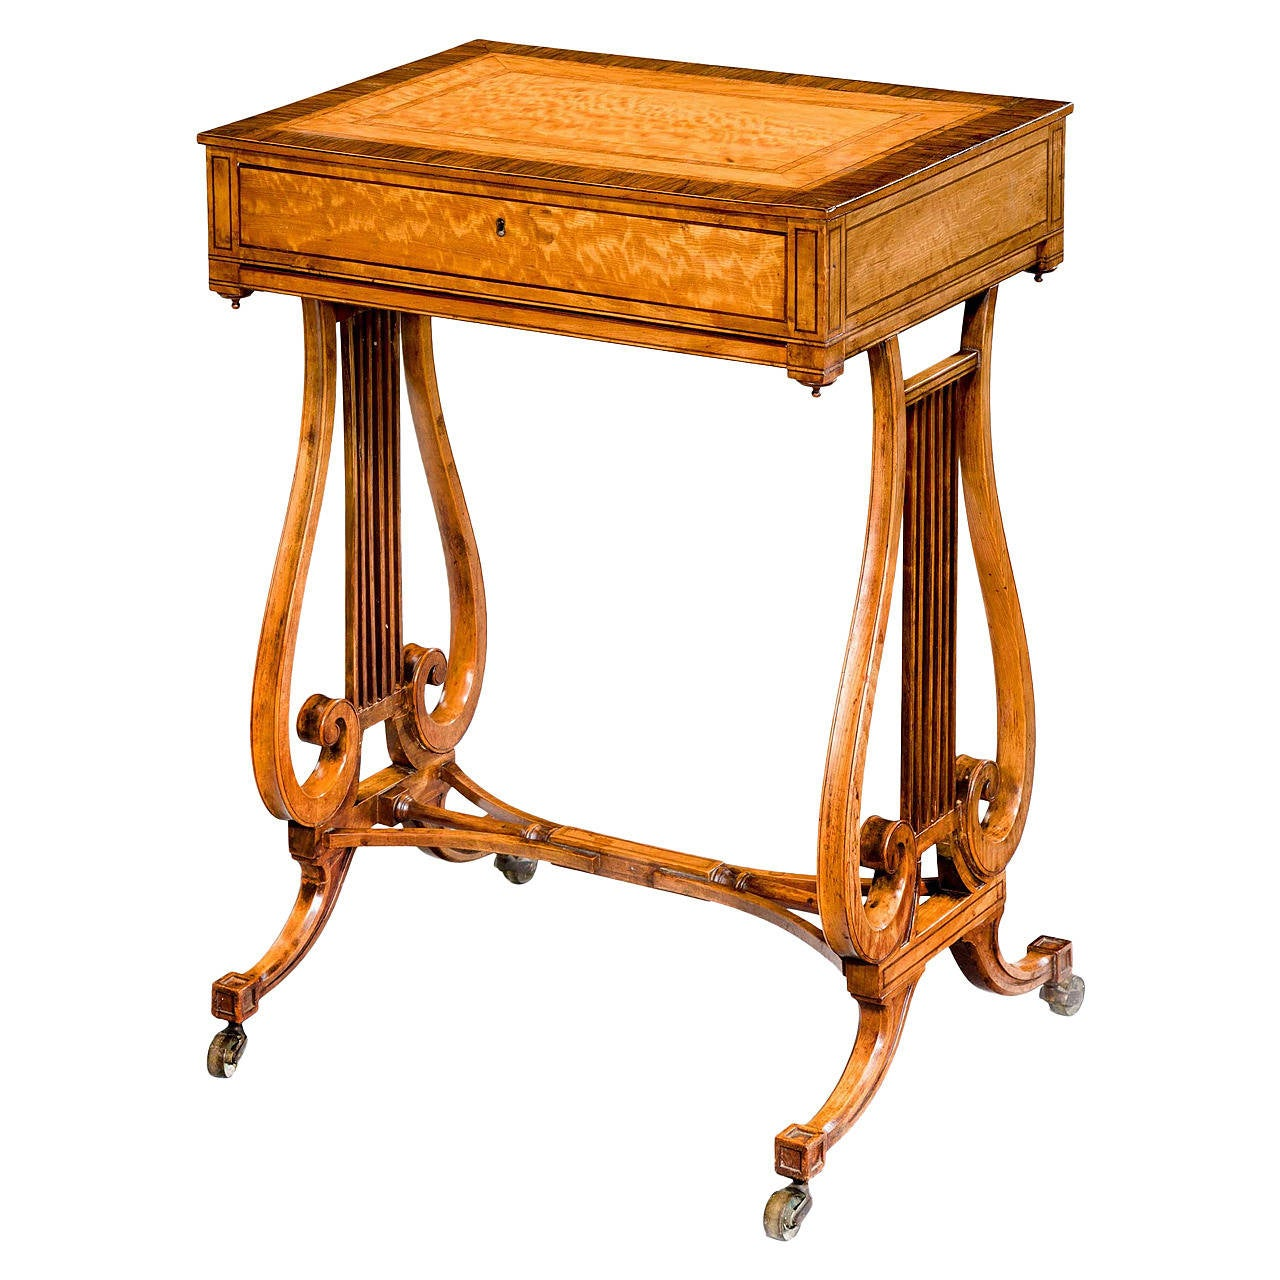 Late 18th Century Satinwood Work Table